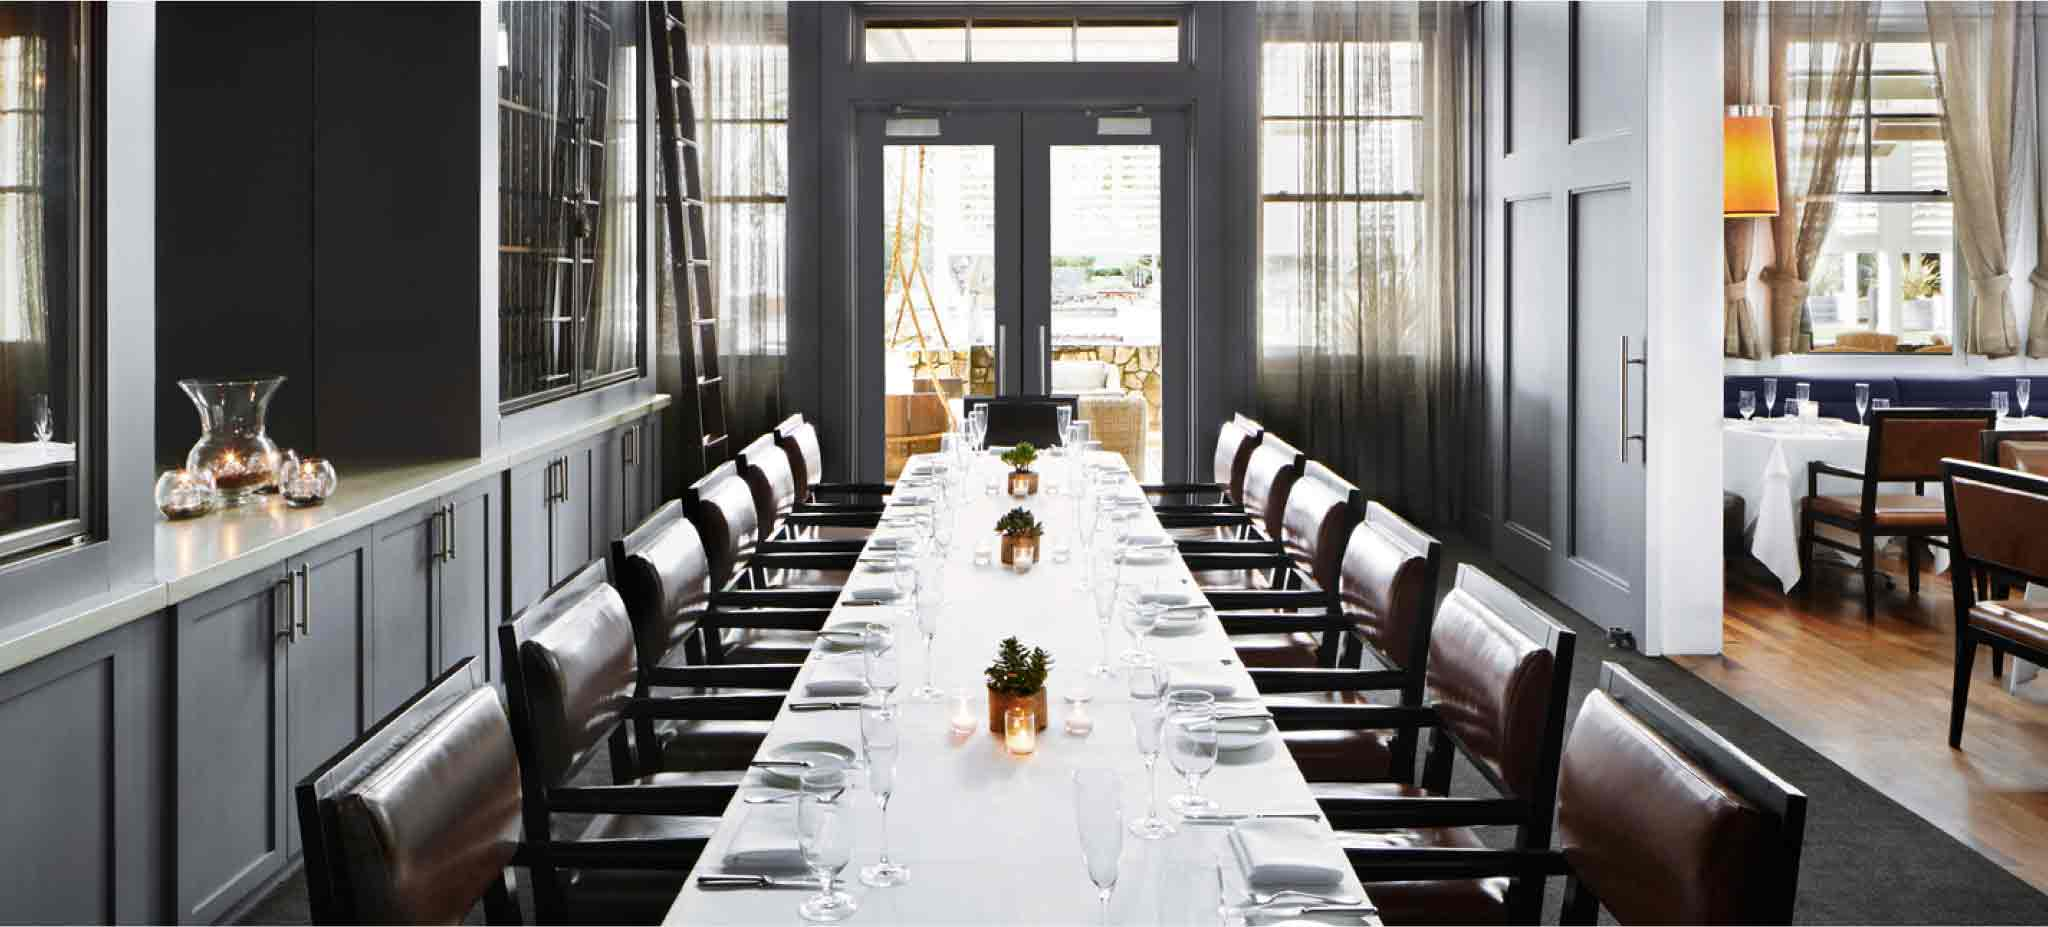 Event Venues & Spaces for Corporate Events & Weddings | EVENTup